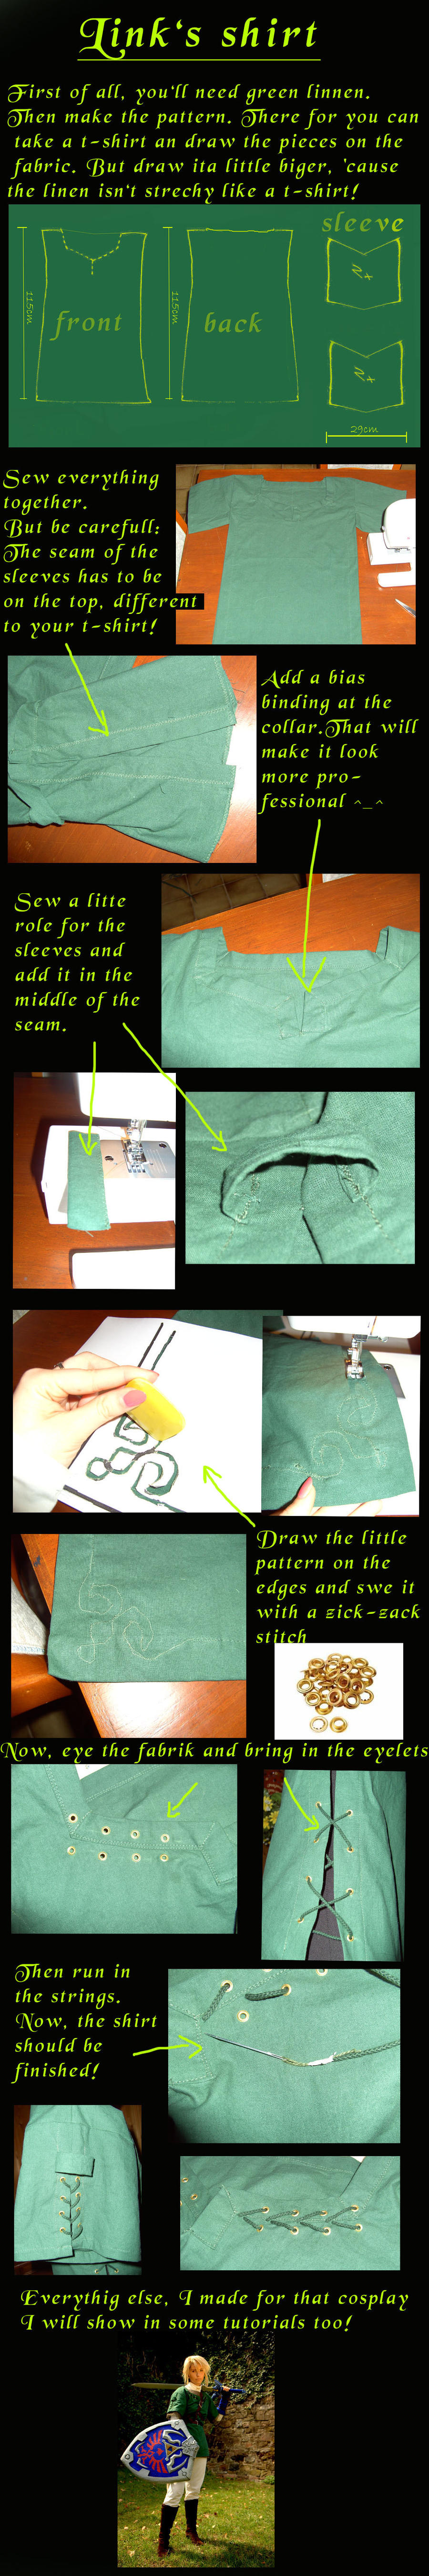 Tutorial, How to: Link's shirt